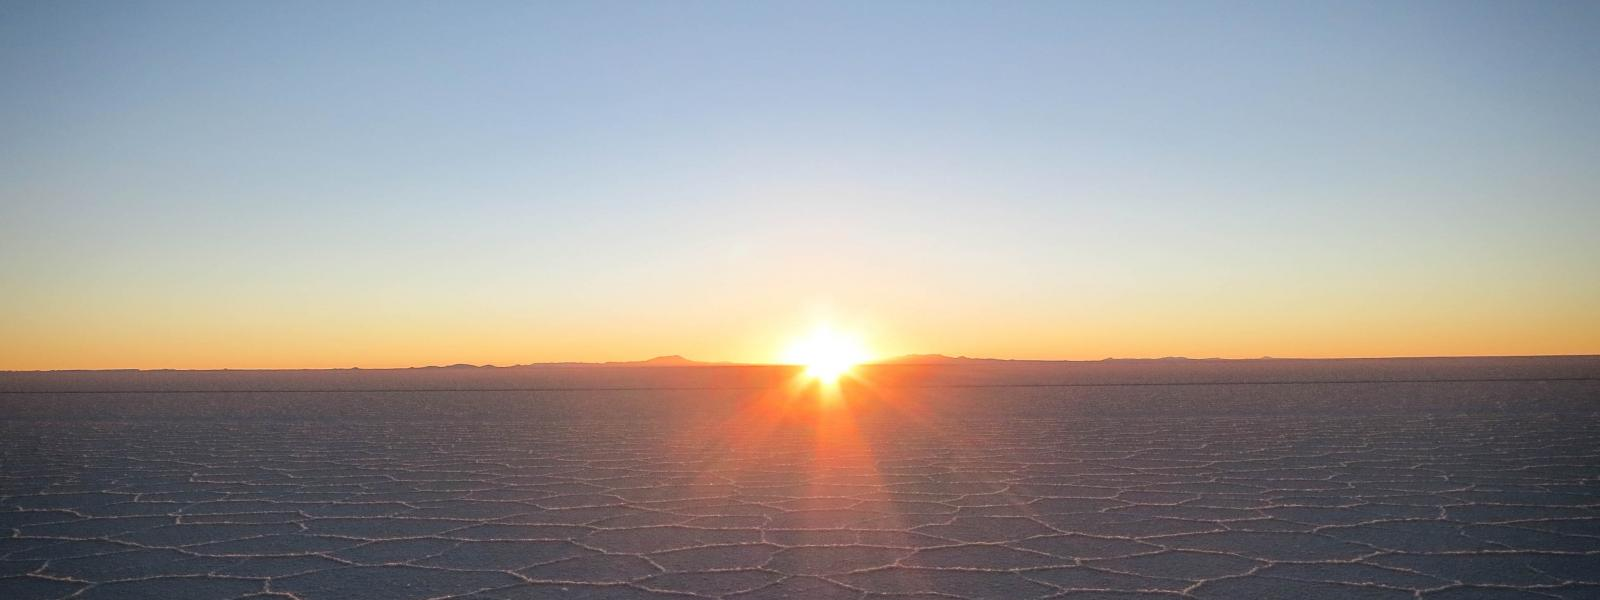 sun rising over the salt flats in Bolivia.